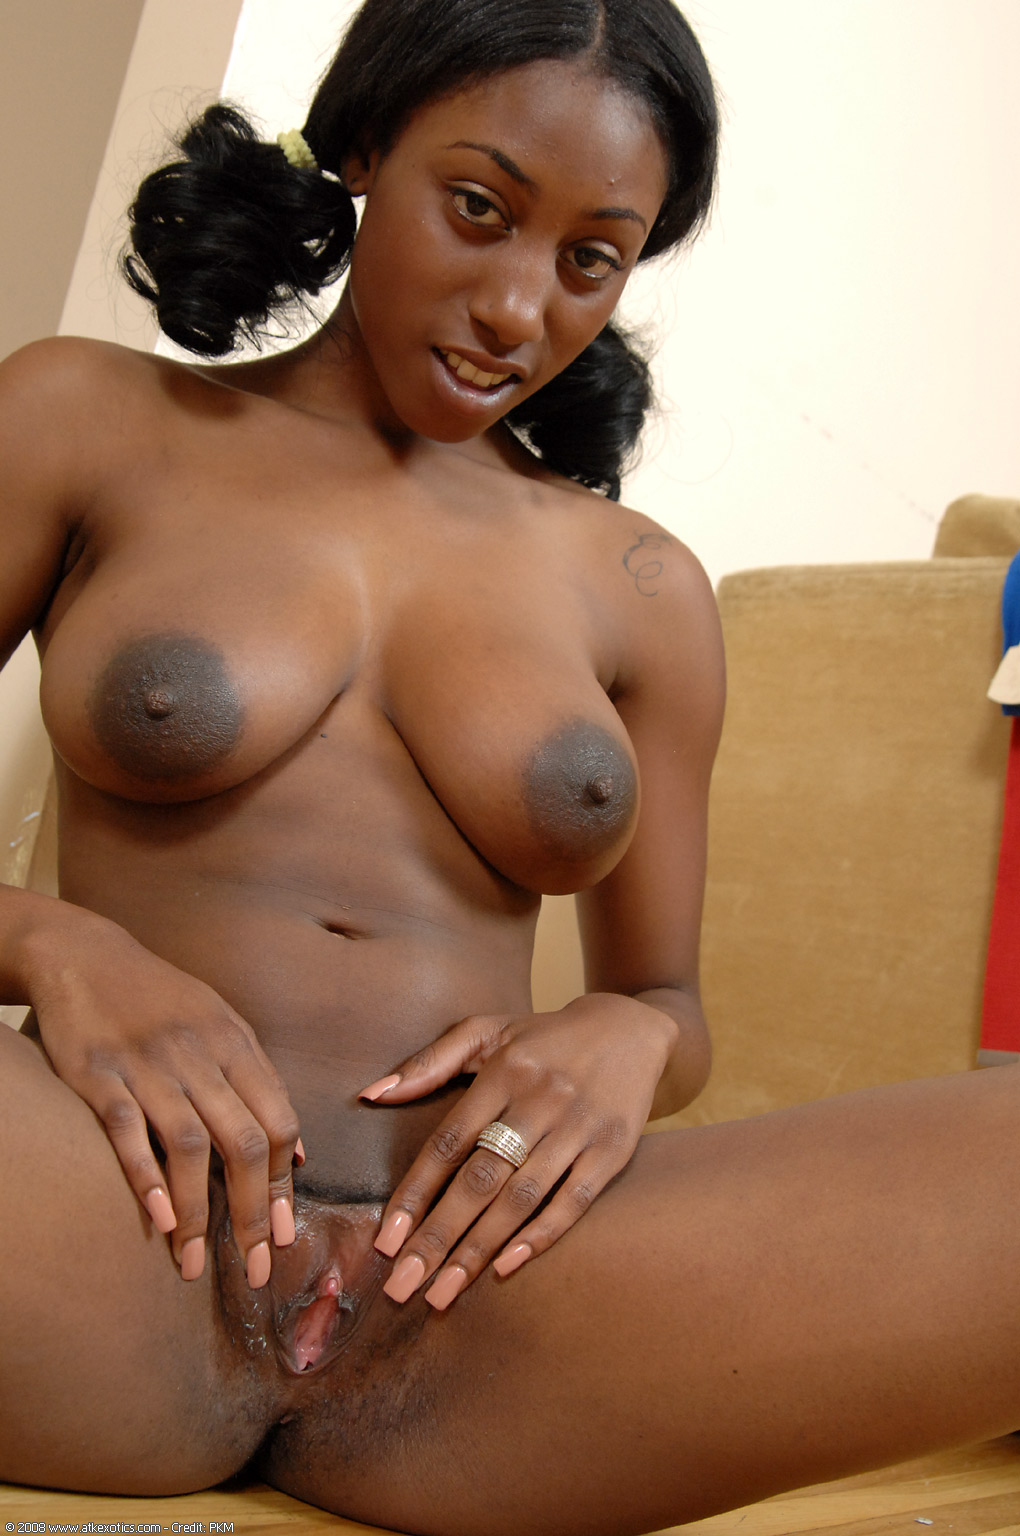 German ebony porn similar. apologise